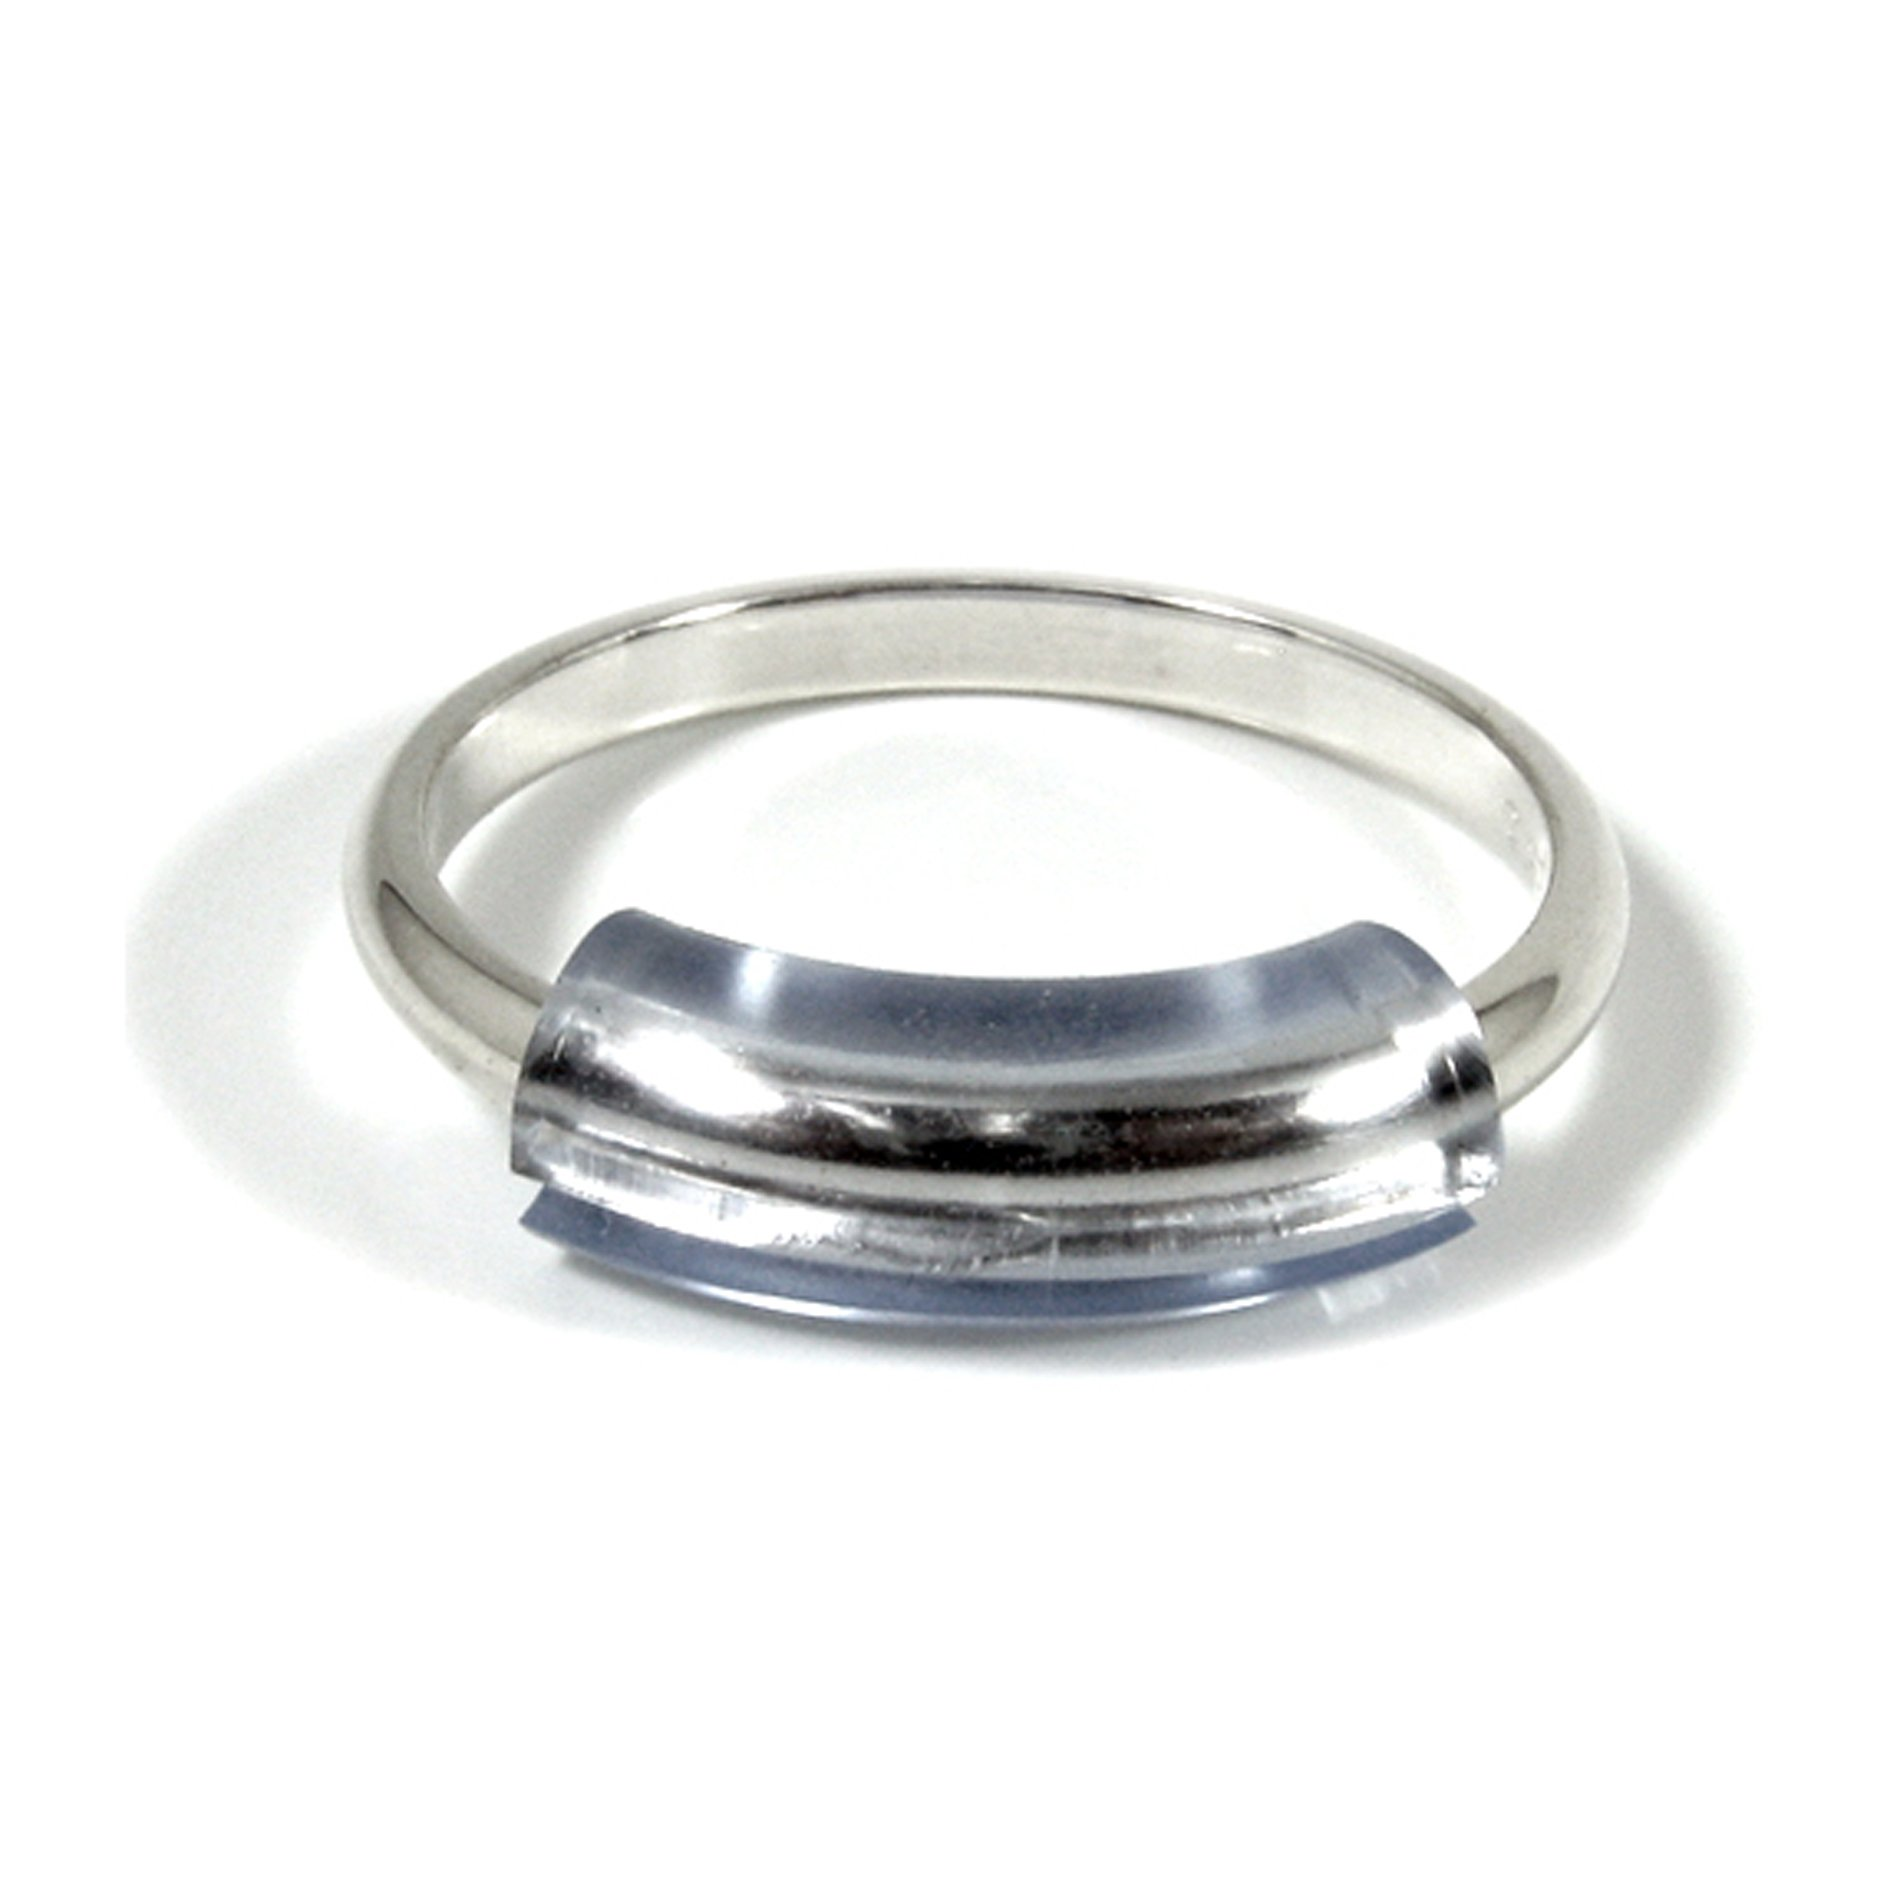 RING NOODLE: Ring Size Reducer | Ring Guard | Ring Size Adjuster. Size: Mixed for Thin Rings, 1 Mini, 1 Petite, 1 Narrow, for rings 0.5 to 2.5 mm wide.